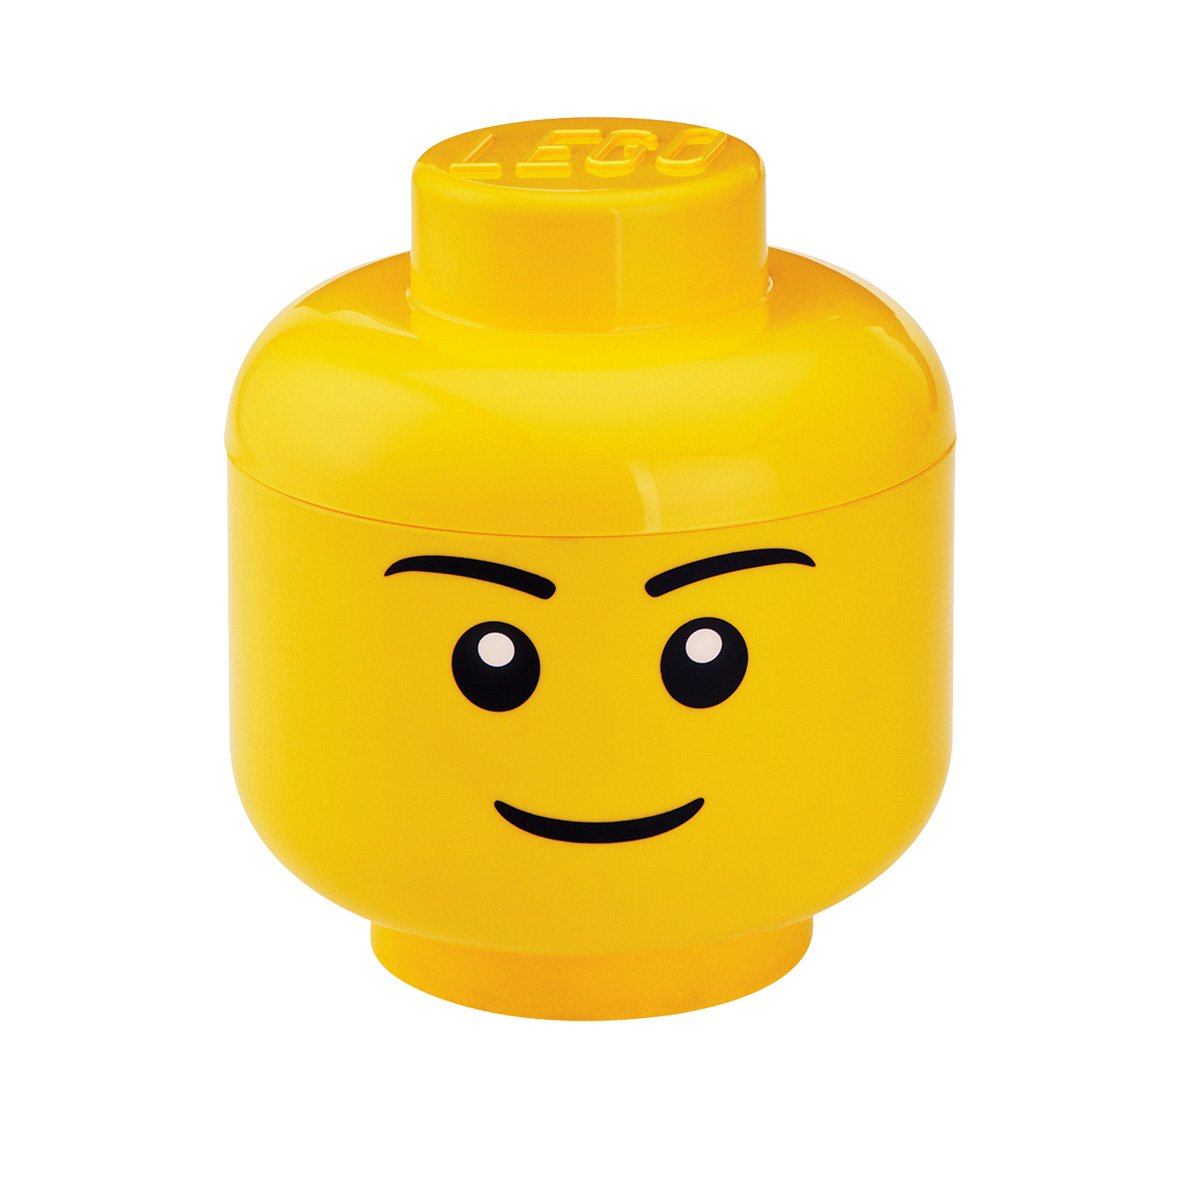 LEGO Storage 40310632 Head Small, Boy